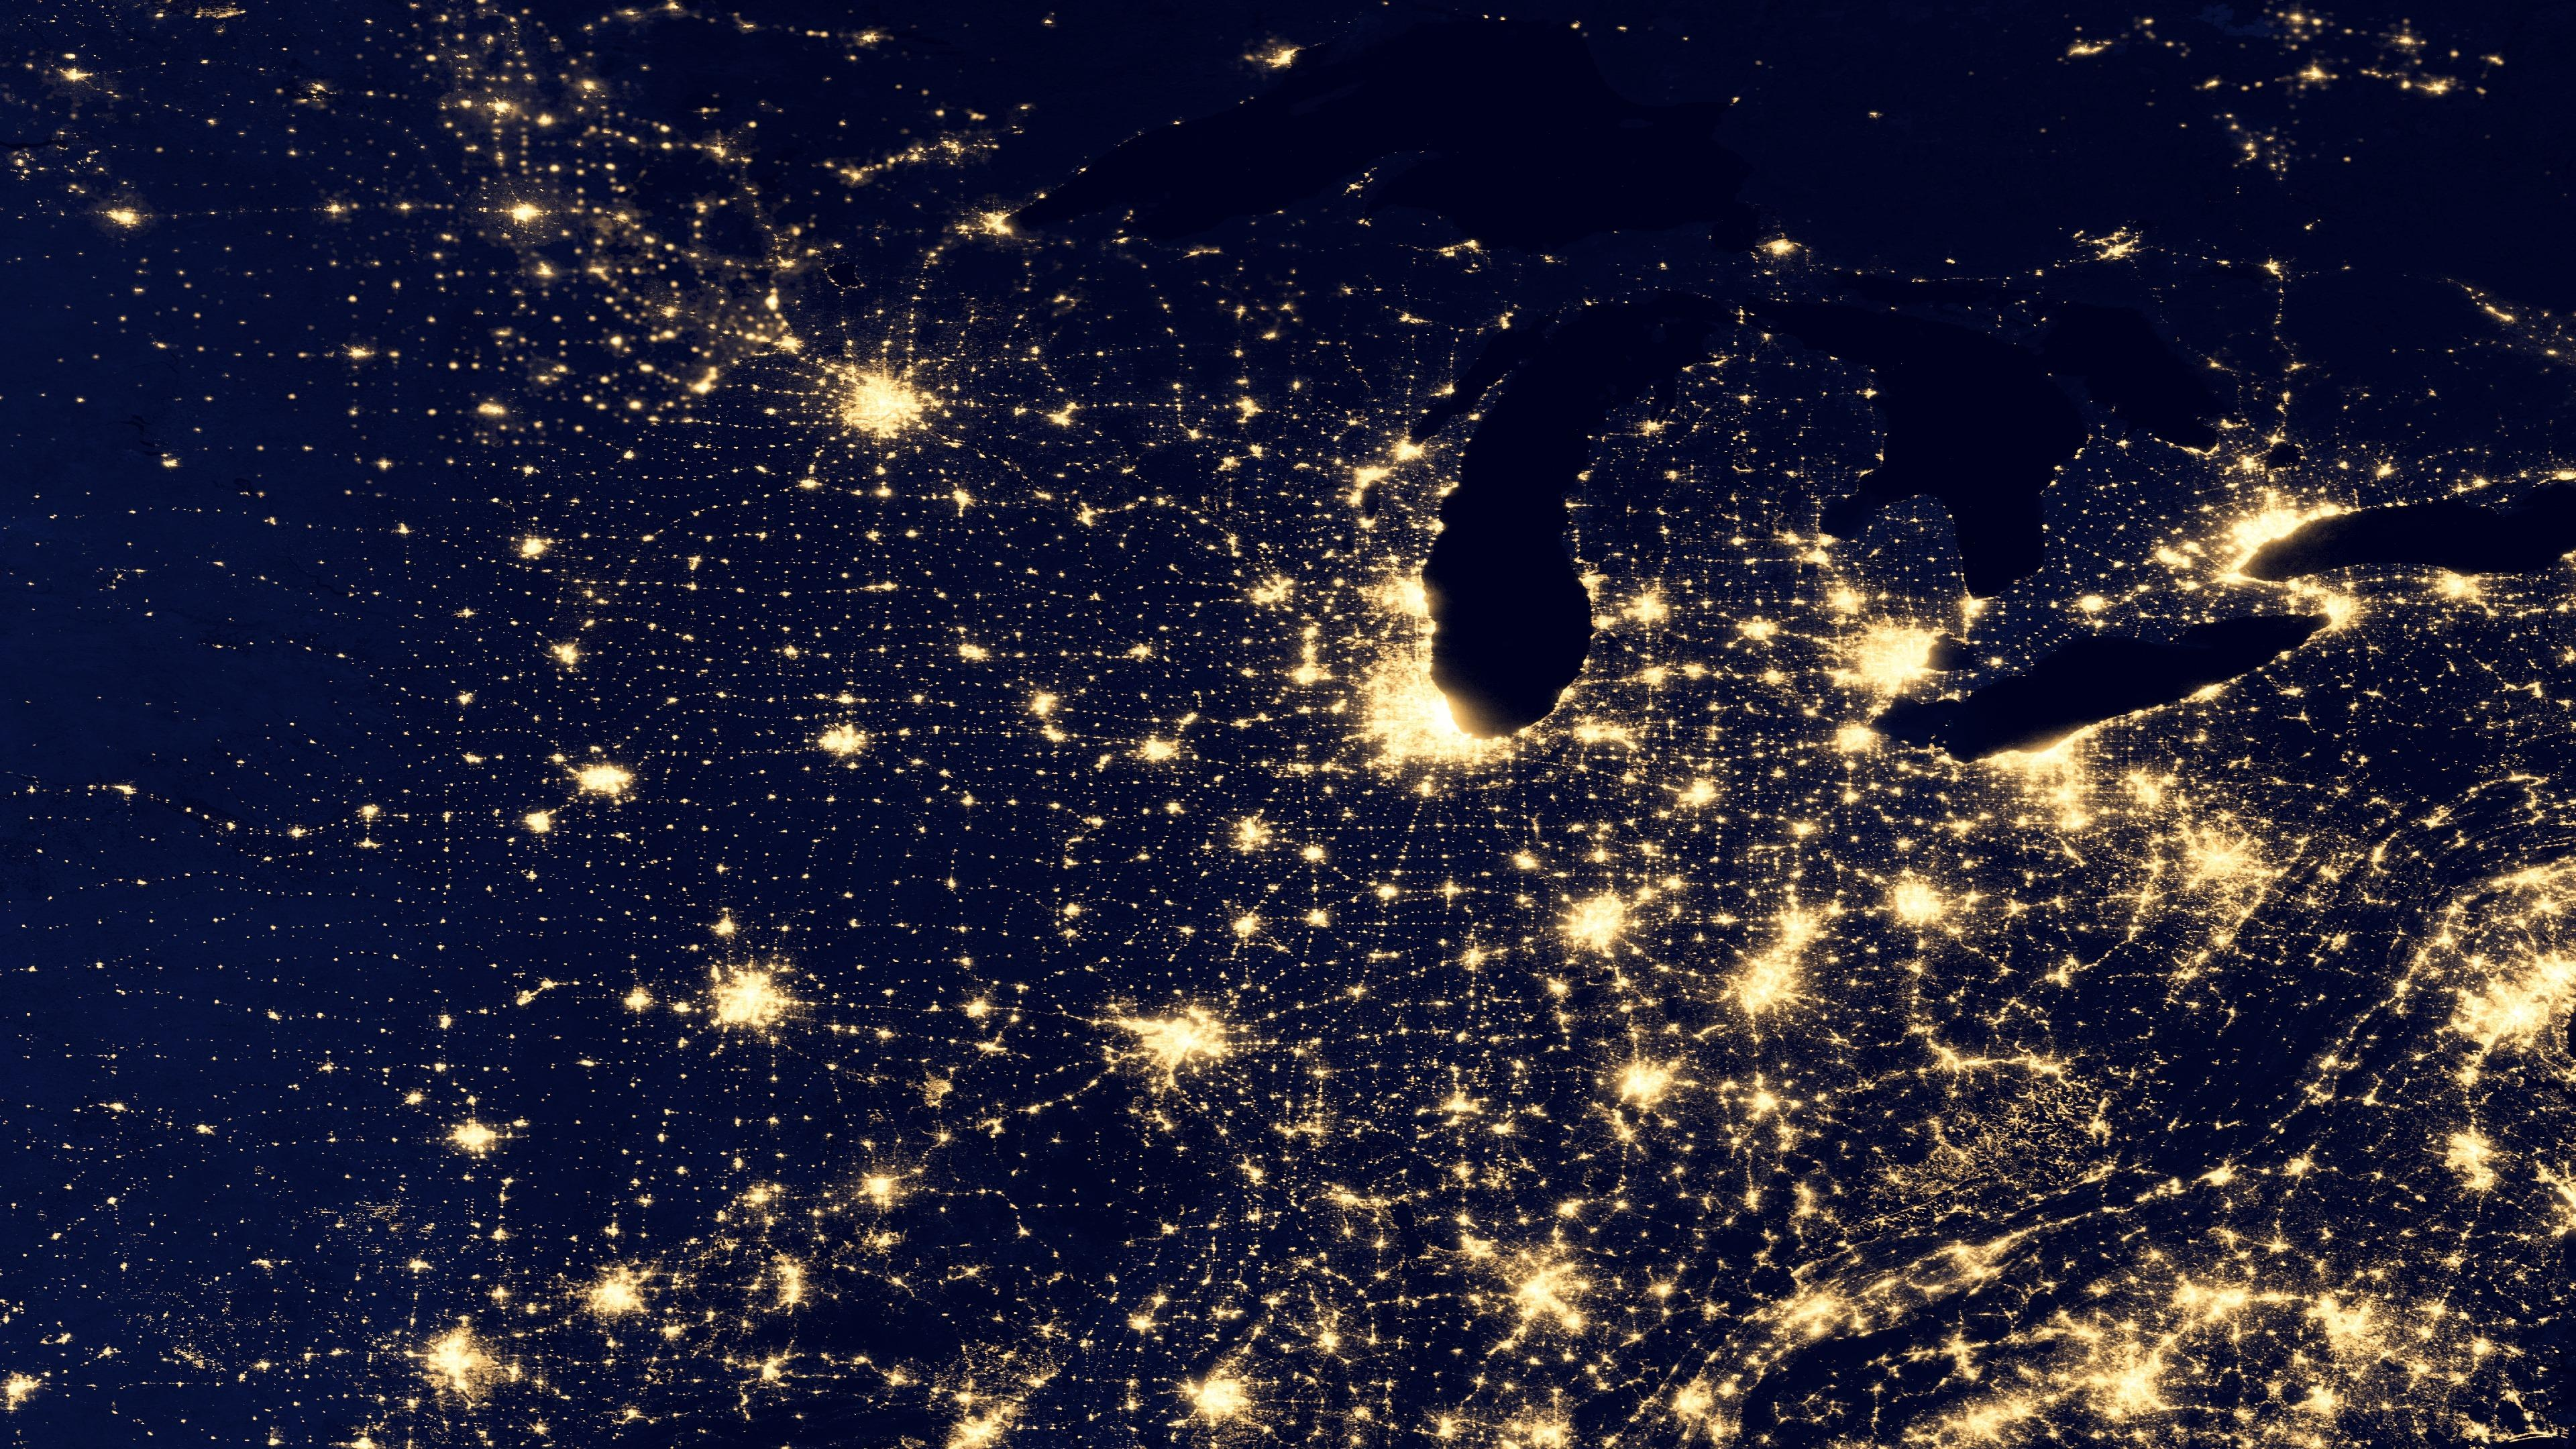 Night Lights of the Midwestern USA v2012 wallpaper